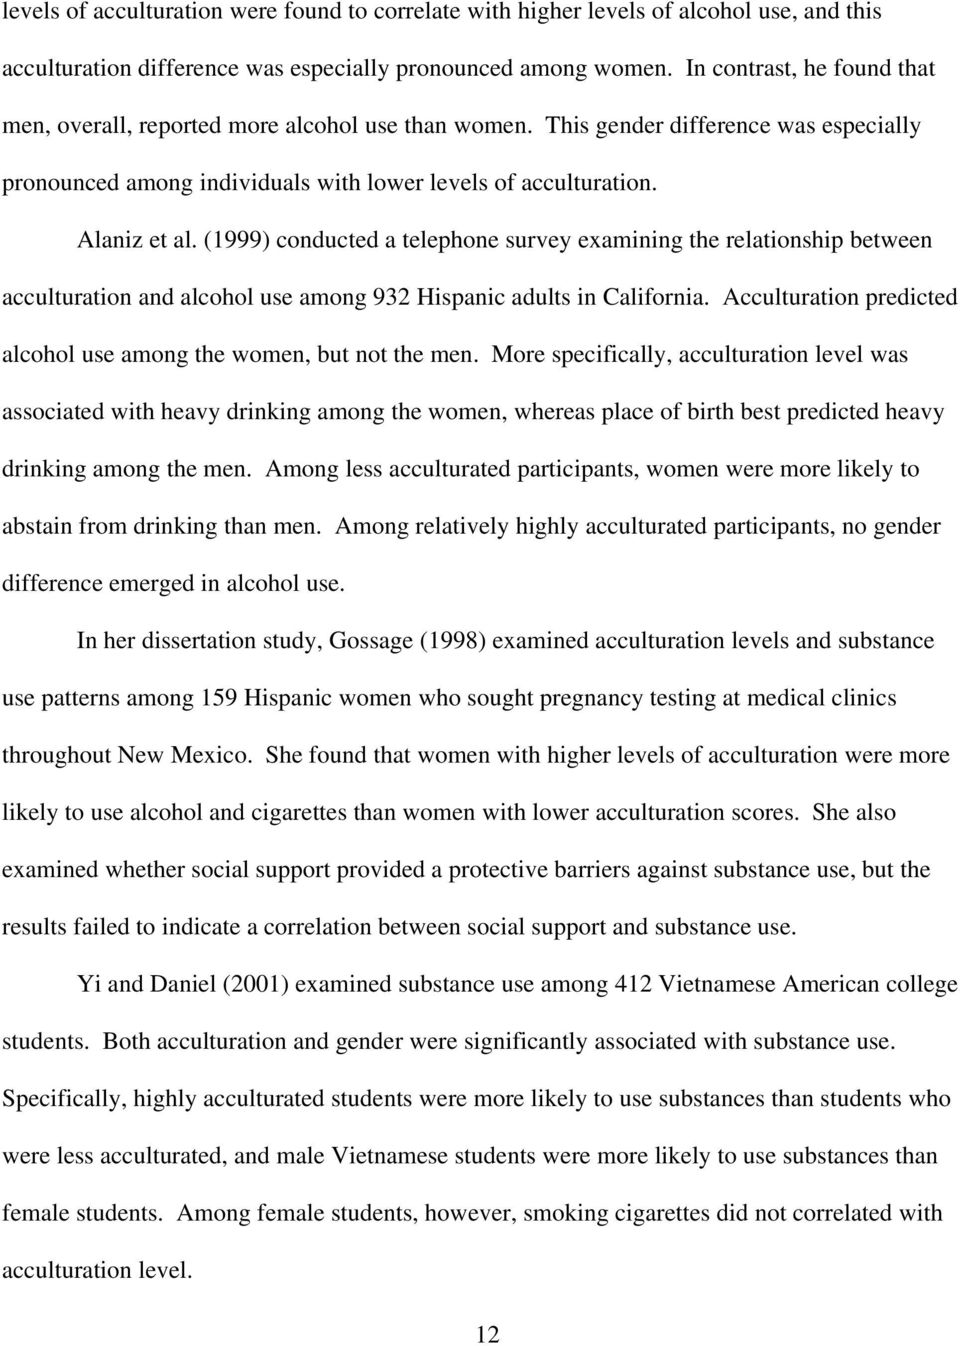 (1999) conducted a telephone survey examining the relationship between acculturation and alcohol use among 932 Hispanic adults in California.